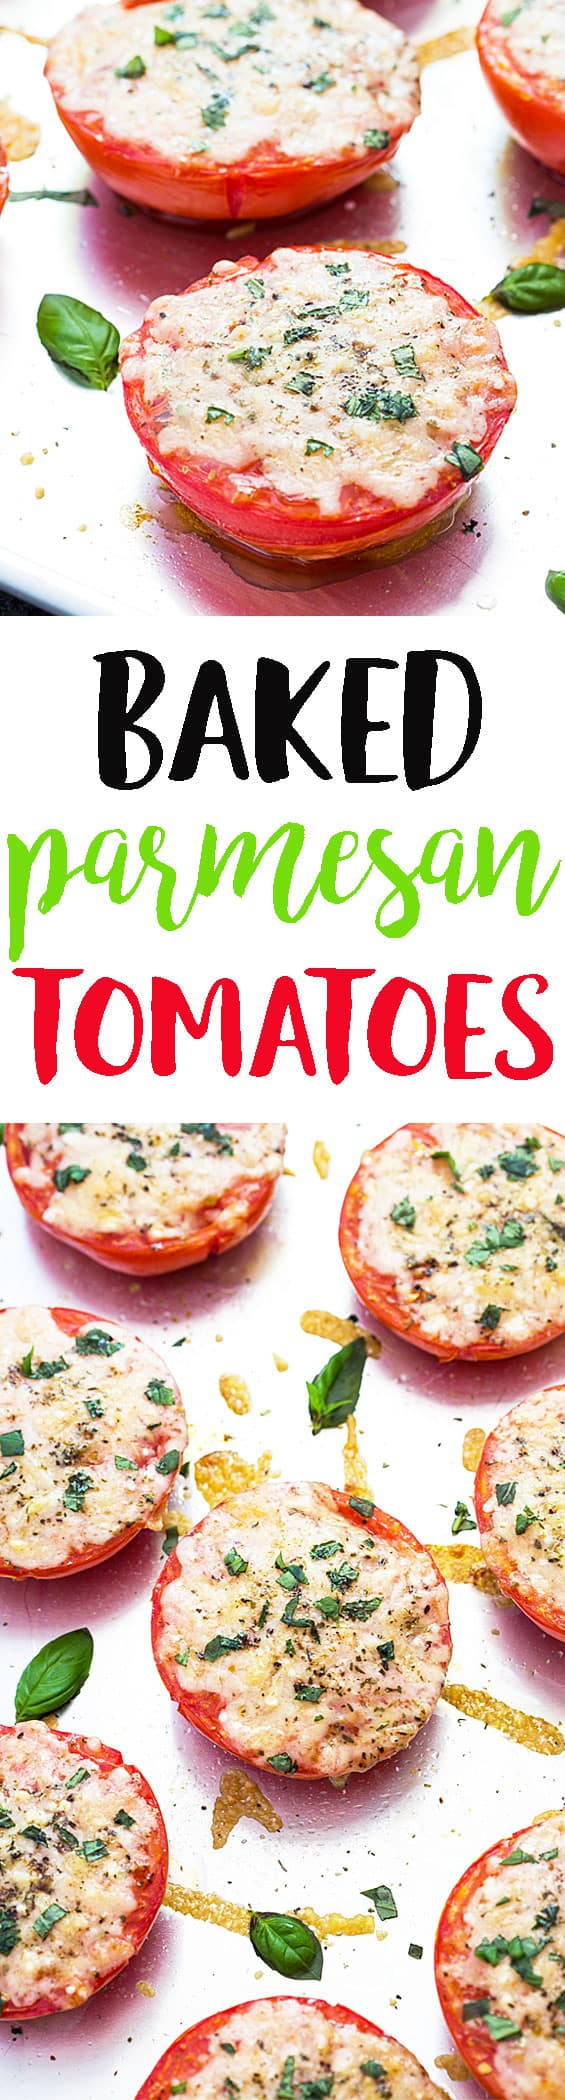 A two image vertical collage of baked Parmesan tomatoes with overlay text in the center.